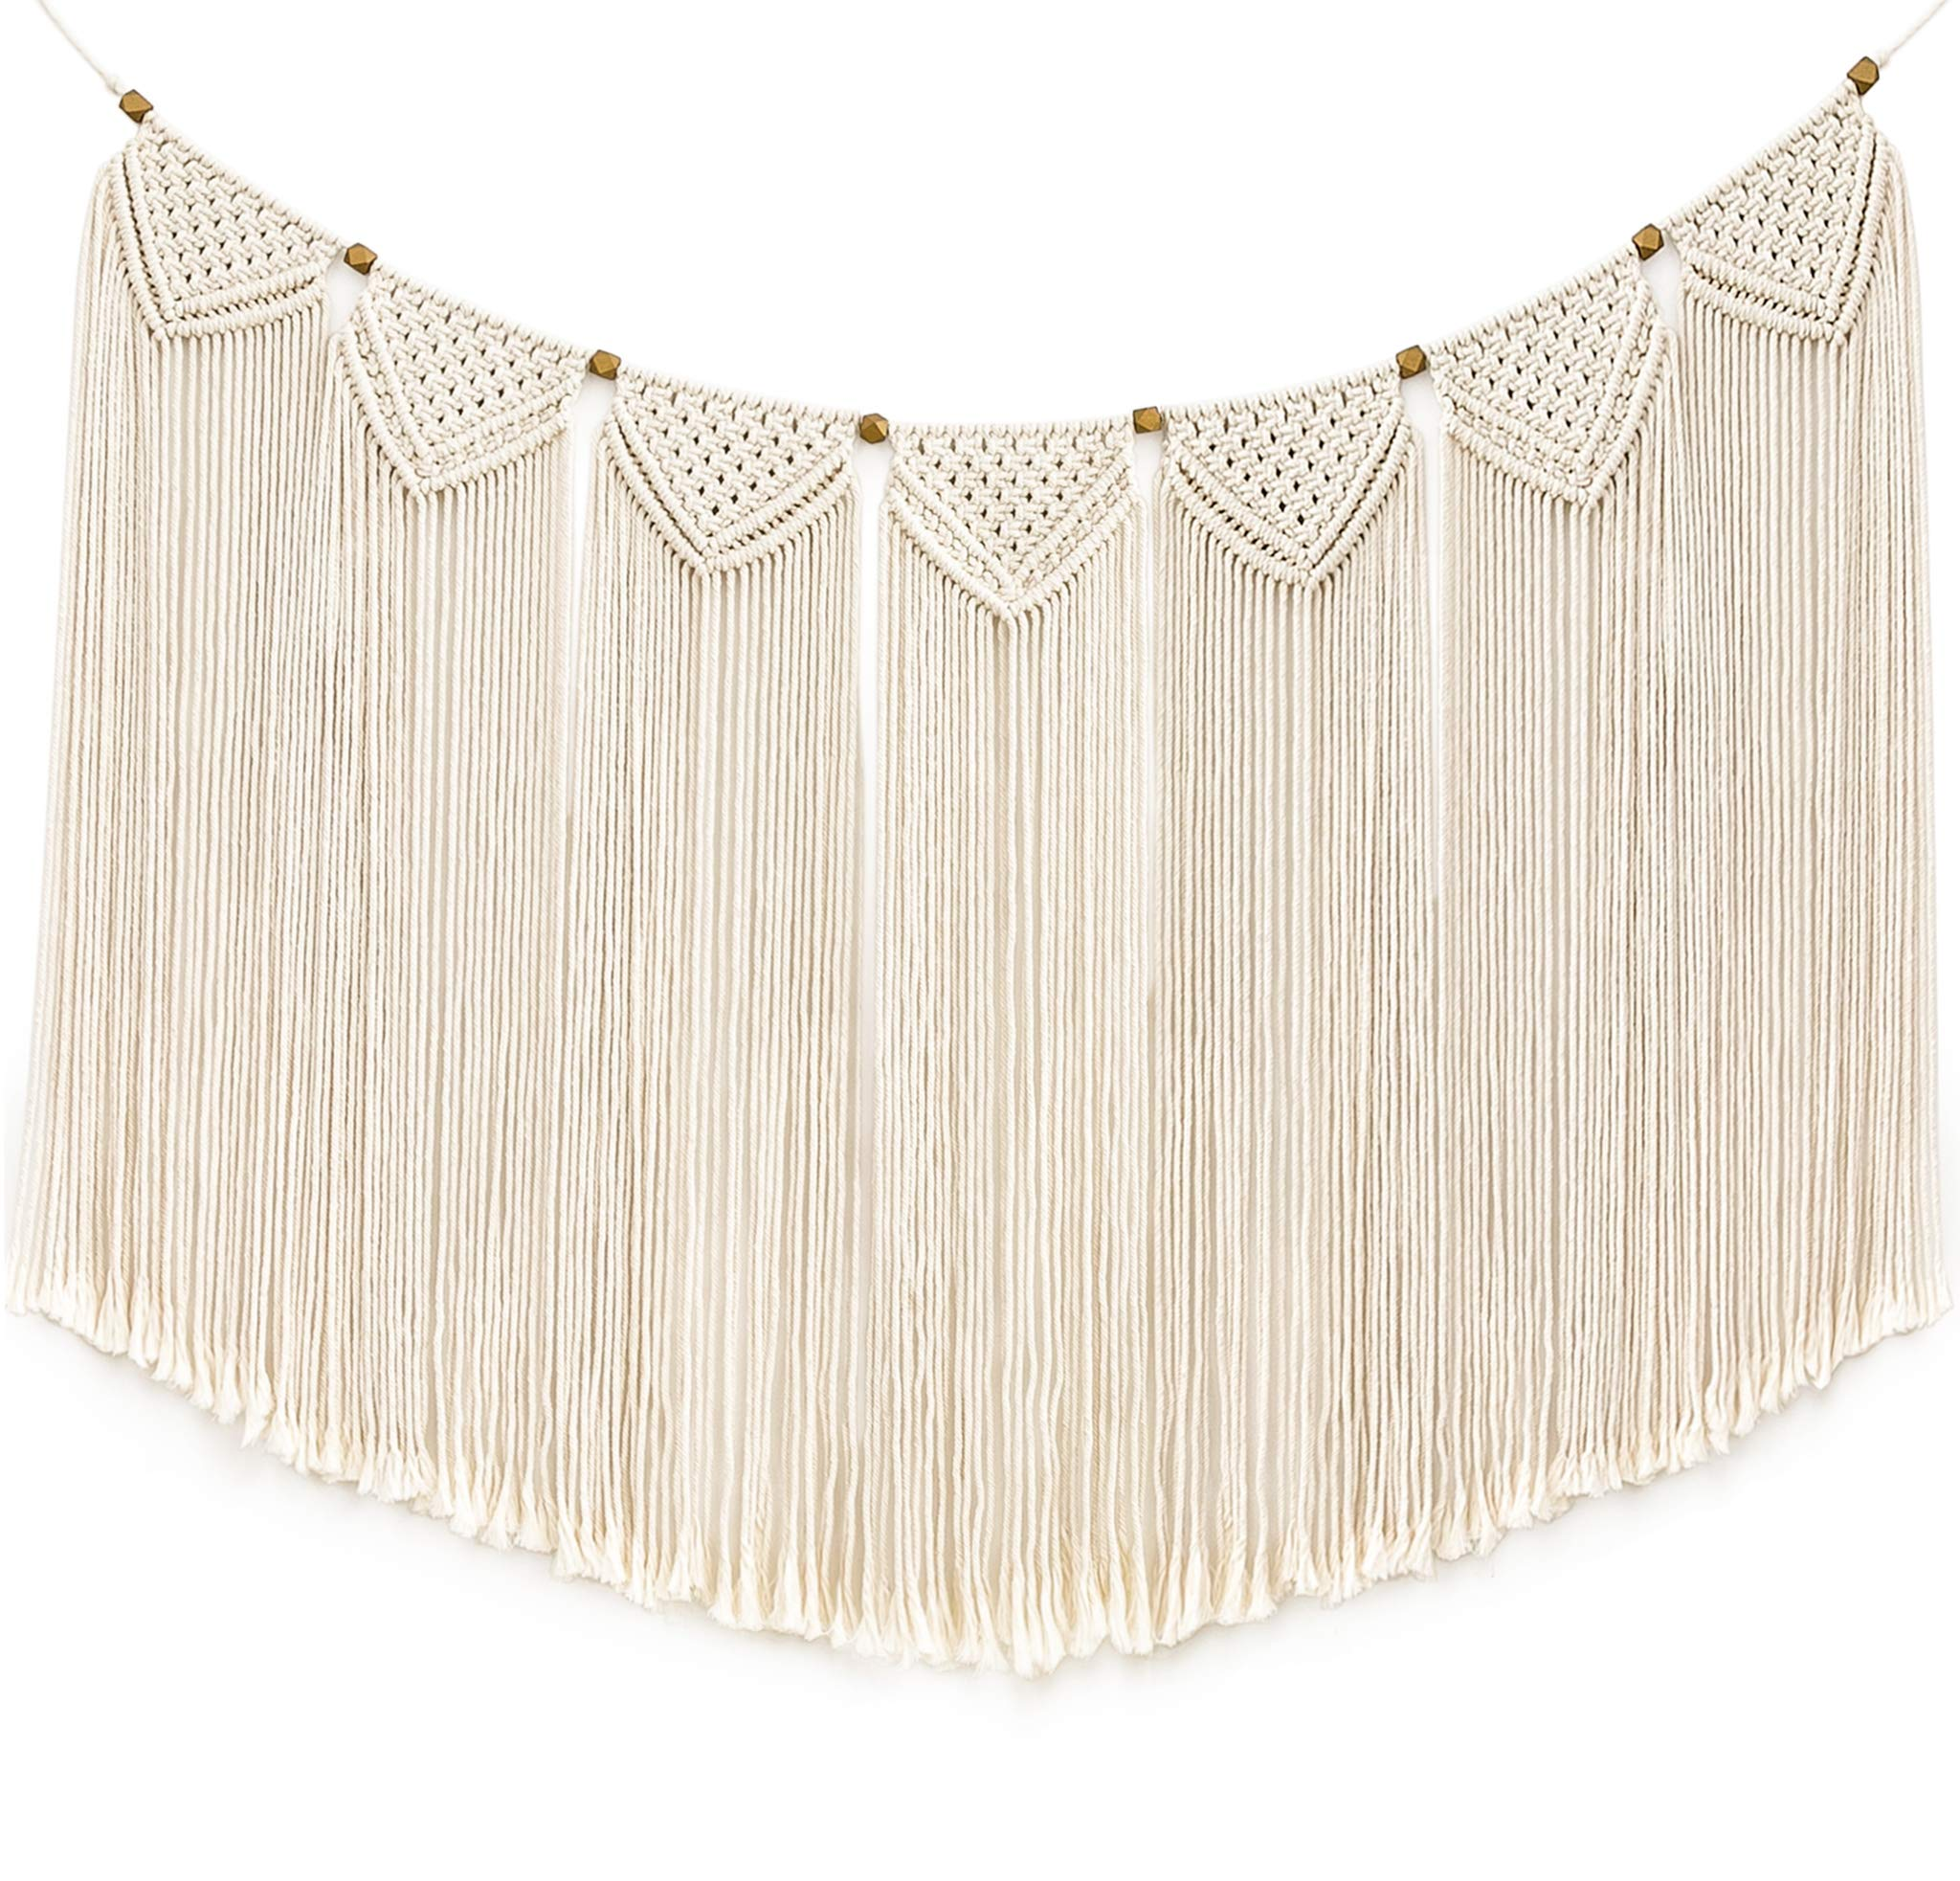 """Mkono Macrame Wall Hanging Curtain Fringe Garland Banner Bohemian Wall Decor Woven Home Decoration for Apartment Bedroom Living Room Gallery Baby Nursery, 47"""" L X 28"""" W - This large Macrame Bunting Wall Hanging will add character and charm to any wall in your house. Woven macramé hangings are incredibly versatile, and can easily transform any room into a modern, yet ethereal sanctuary. You'll adore its lovely texture and minimalistic beauty. With this macrame wall hanging you'll instantly add a bohemian vibe to your room an it will really warm up a space. Will spice up any part of your home be it your bed headboard, living room, gallery wall, windows, over an unused fireplace, above your baby's crib in a nursery or background of a wedding and party! This bohemian macrame wall hanging is carefully handcrafted with 100% cotton rope and geometric wooden beads. Gorgeous, durable and eco friendly decor, suitable for indoor use. - living-room-decor, living-room, home-decor - 819SnzrykYL -"""